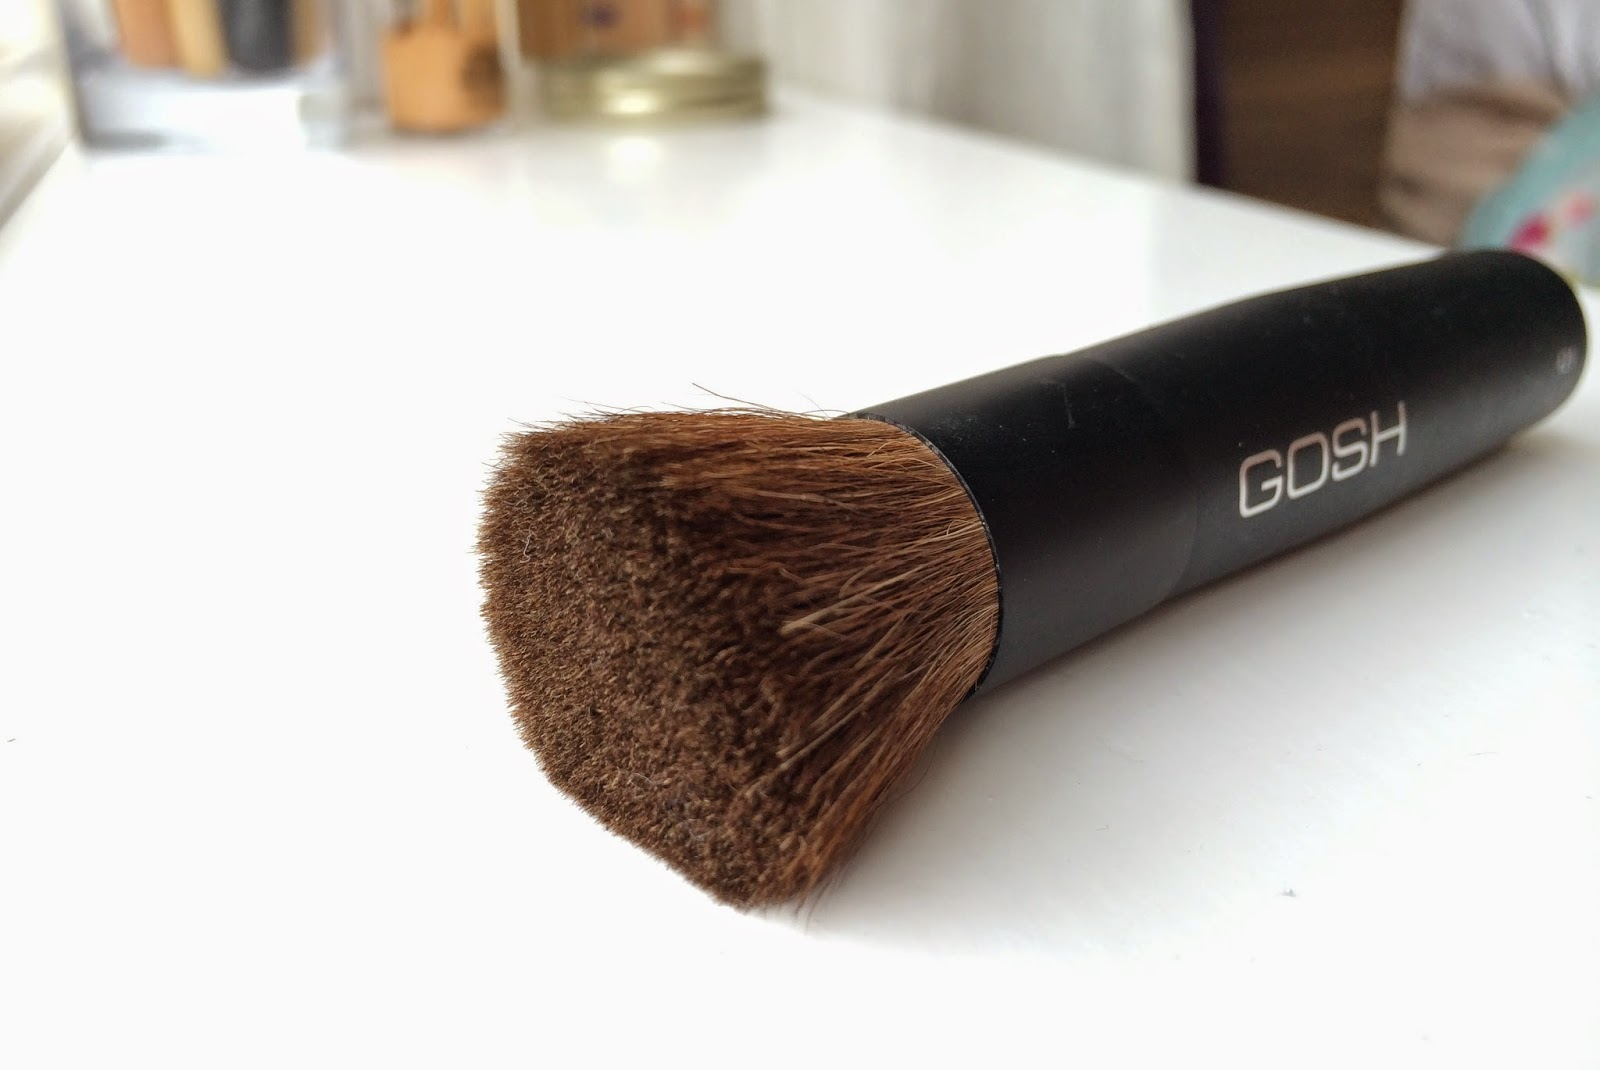 gosh-cosmetics-mineral-powder-brush-review-2014